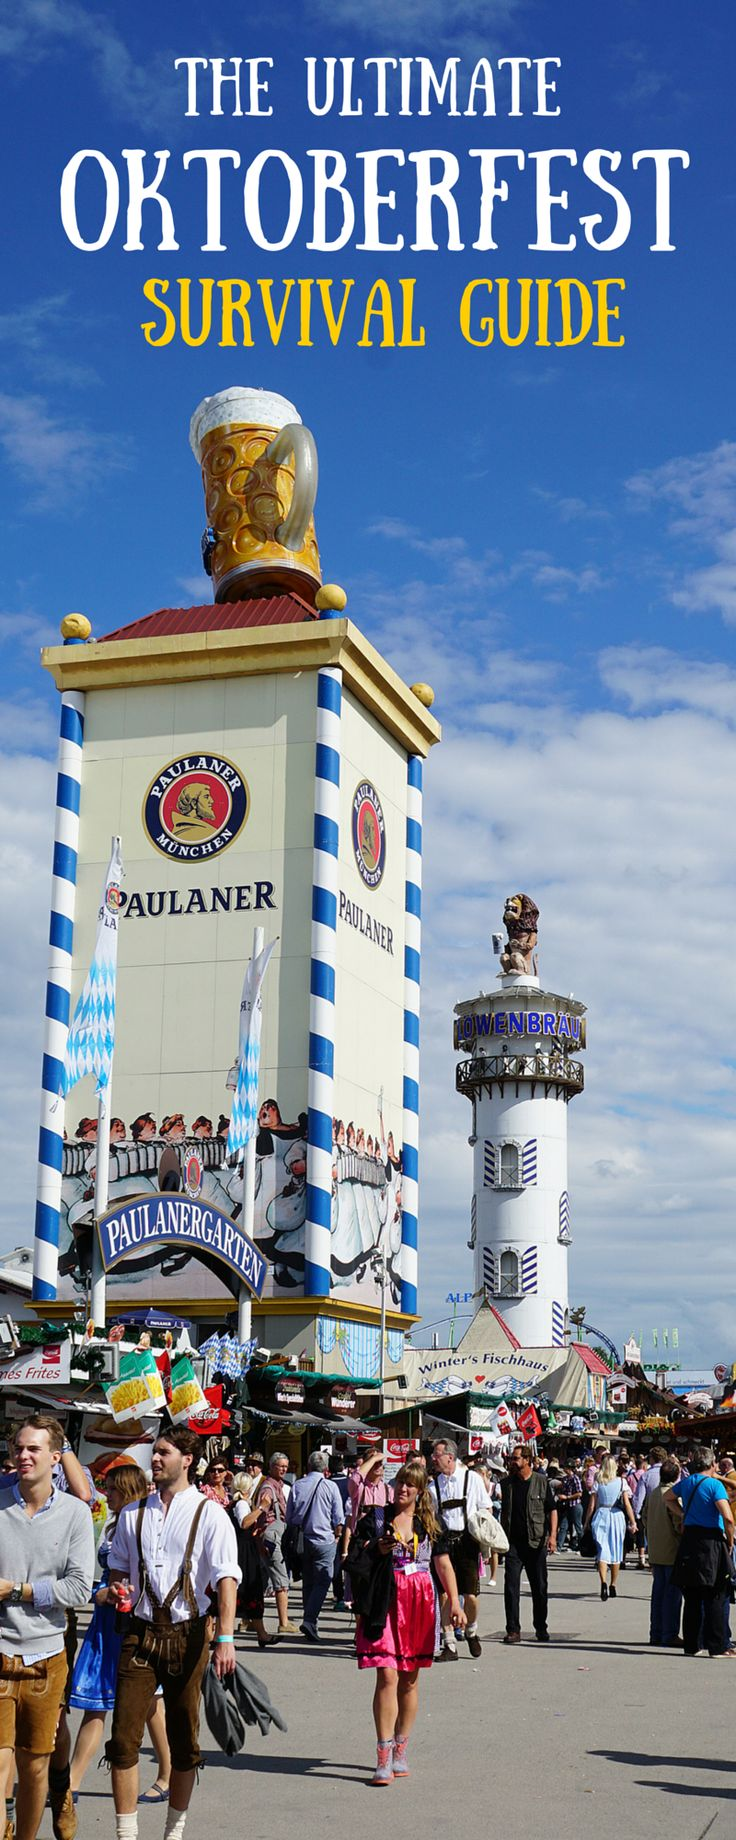 The ultimate survival guide to Oktoberfest in Munich. Where to stay, how to get into the famous beer tents and what to eat. Be prepared for the biggest folk festival in the world